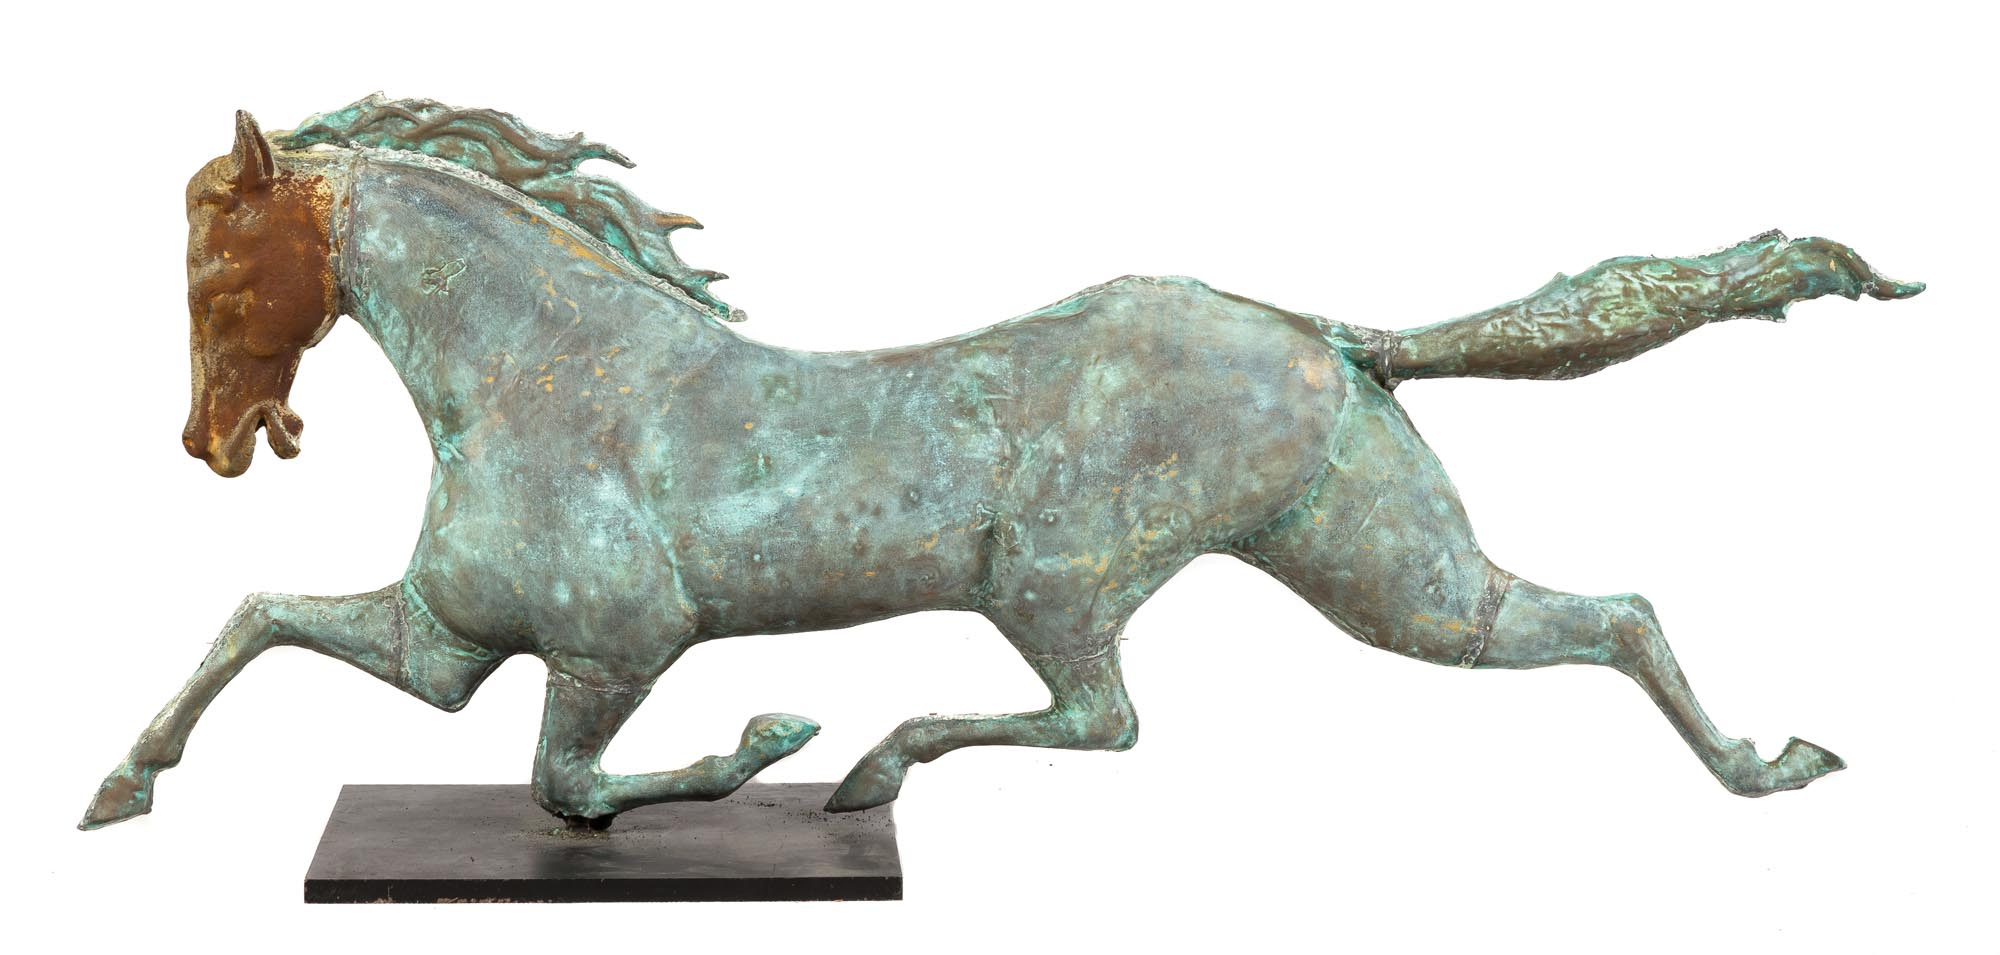 Lot 296 - 19th Century Copper Running Horse Weather Vain. With cast iron head. Tail has been reattached. Ht.